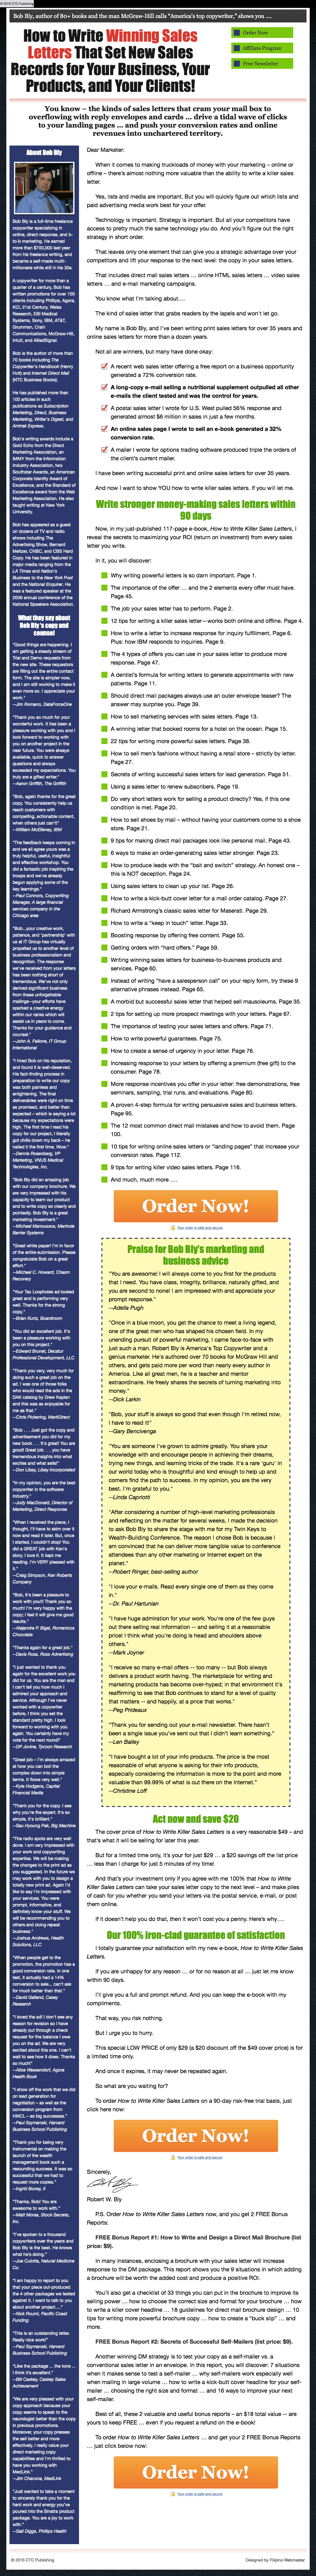 Bly-How to Write Killer Sales Letters